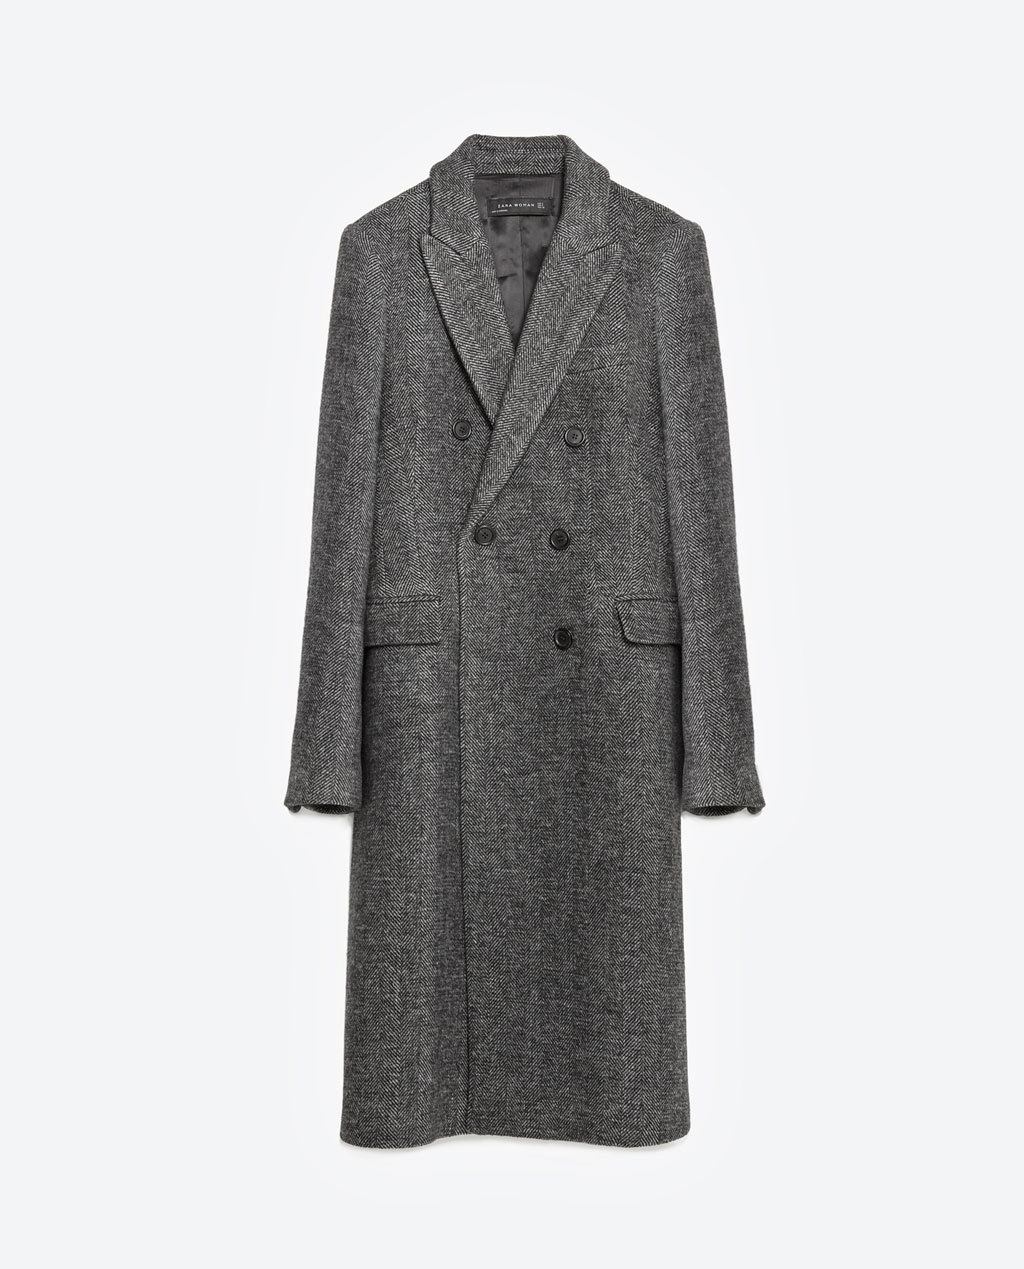 Masculine Herringbone Coat - pattern: plain; style: double breasted; length: on the knee; collar: standard lapel/rever collar; predominant colour: charcoal; occasions: work, creative work; fit: straight cut (boxy); fibres: acrylic - mix; sleeve length: long sleeve; sleeve style: standard; collar break: medium; pattern type: fabric; texture group: woven bulky/heavy; season: a/w 2015; wardrobe: investment